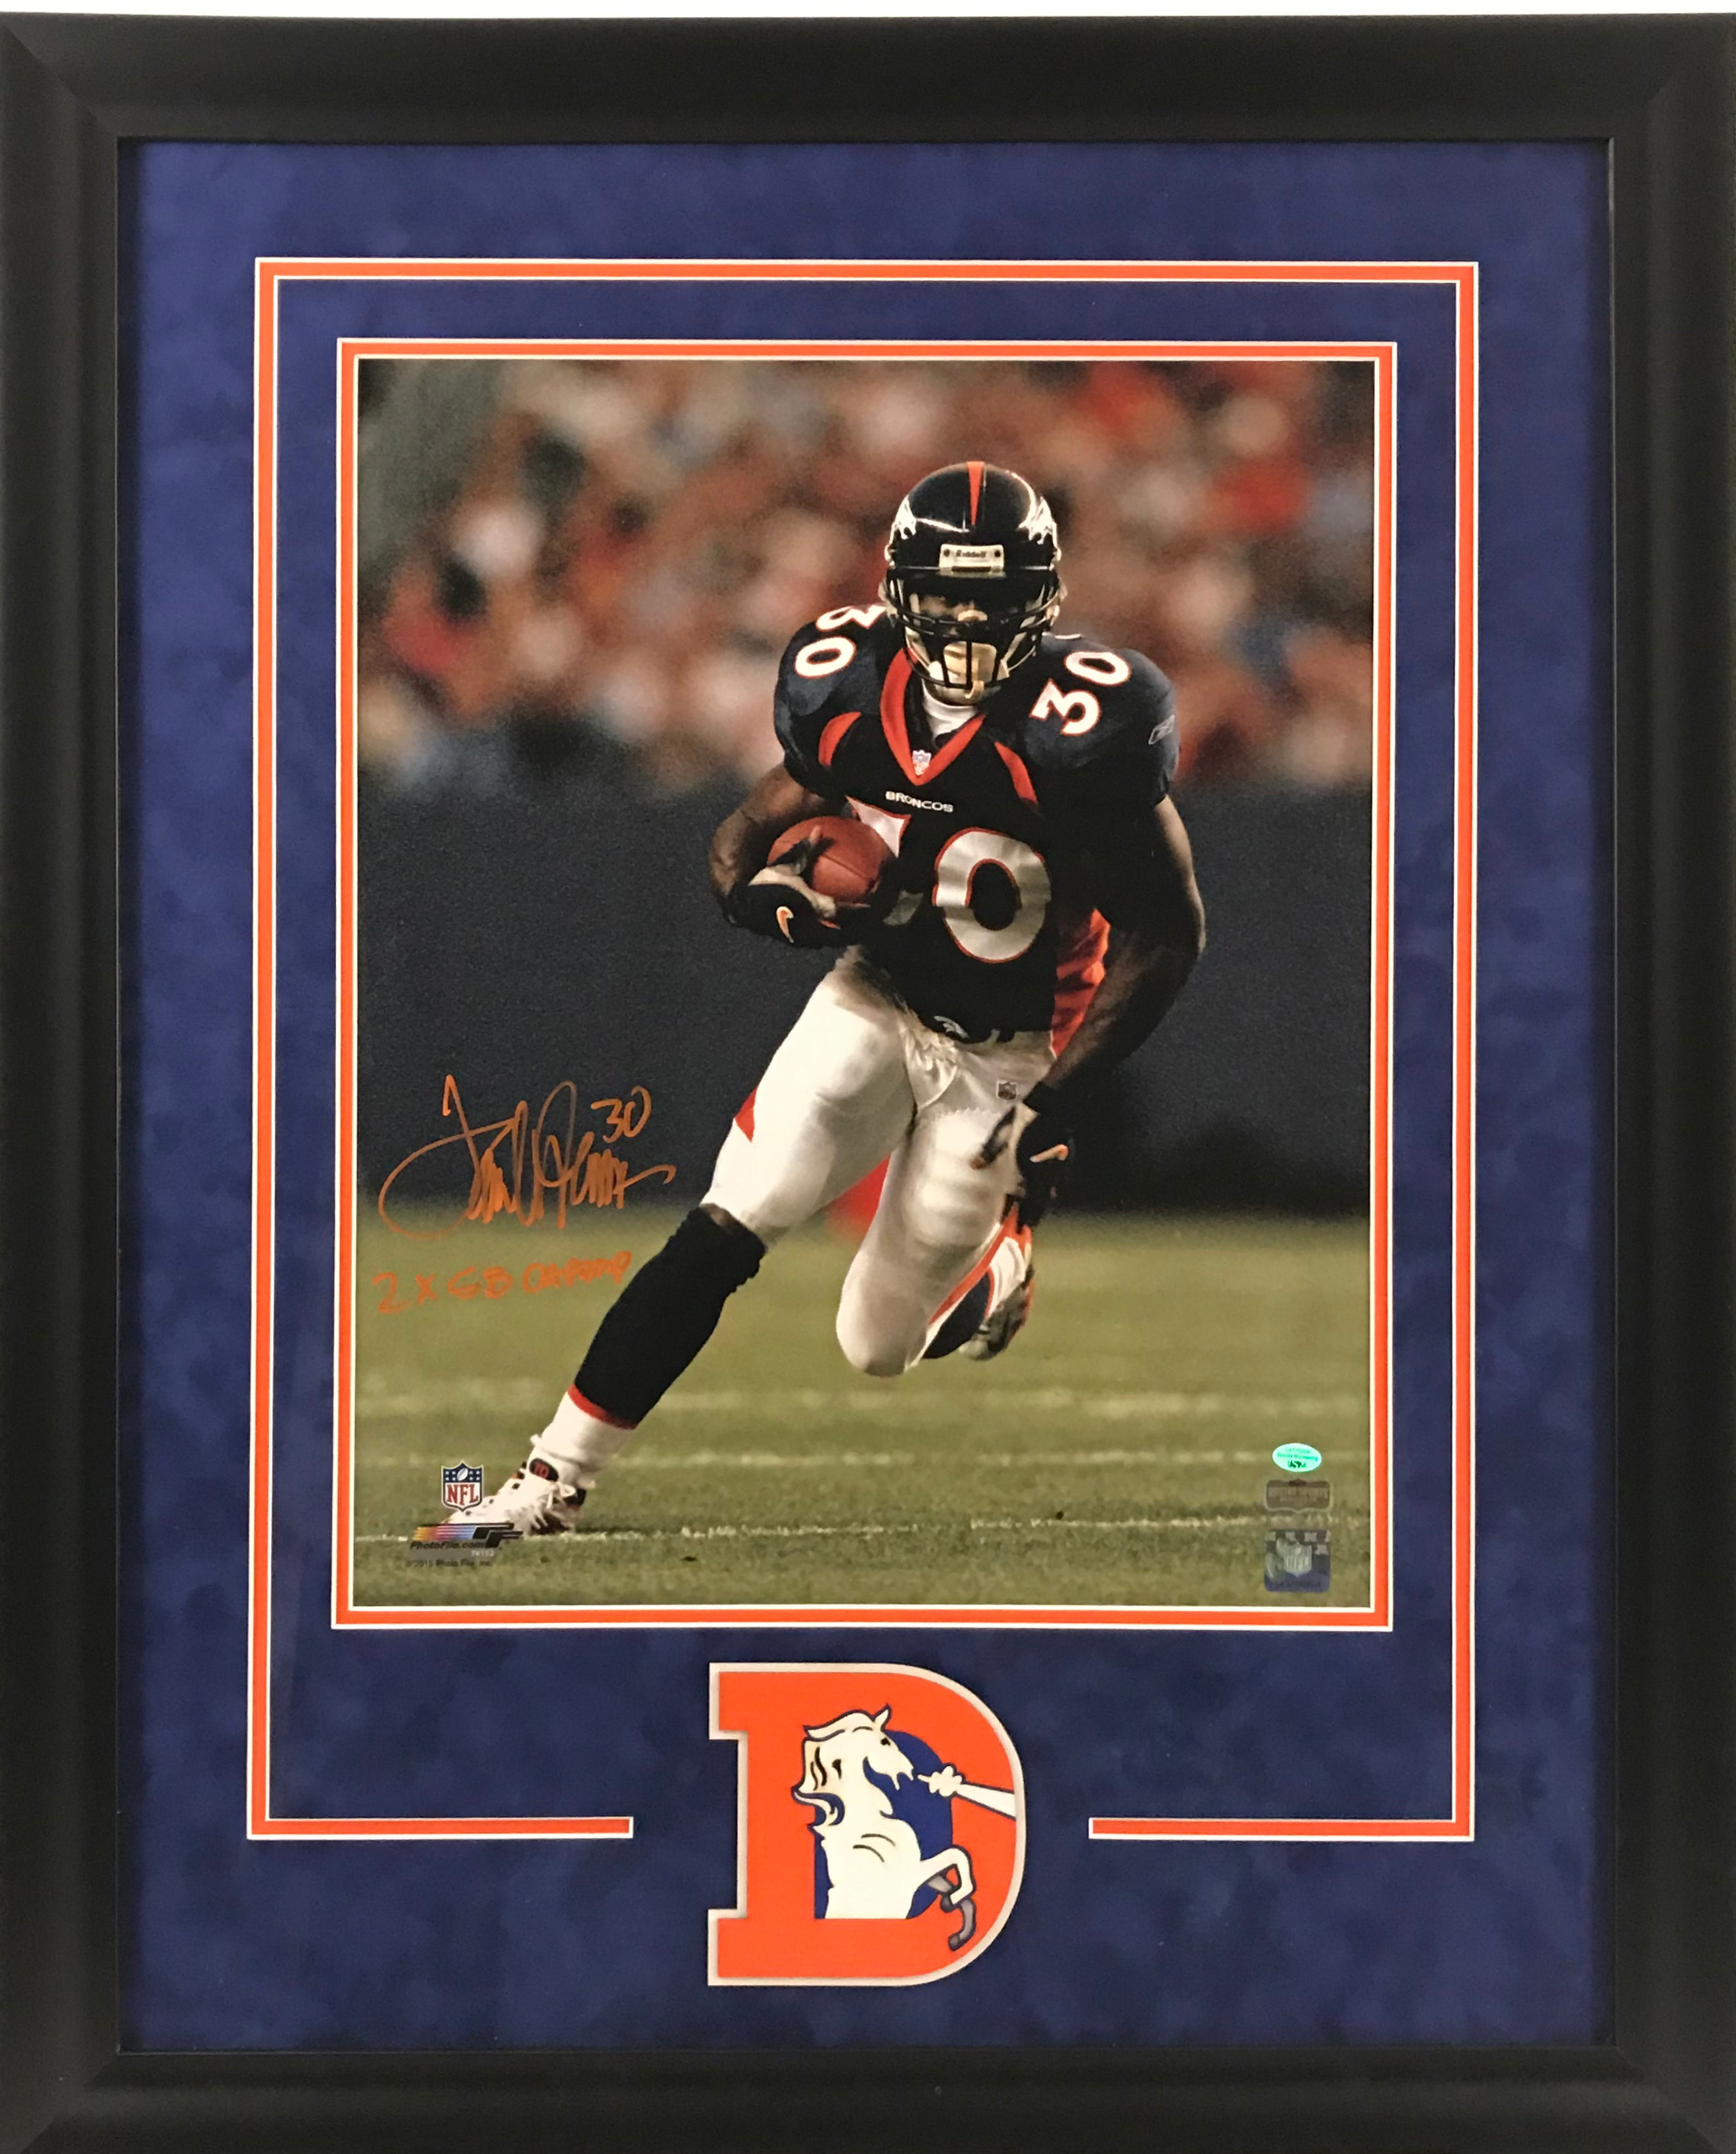 Terrell Davis Signed 16x20 Photo with Inscription - Deluxe Framing